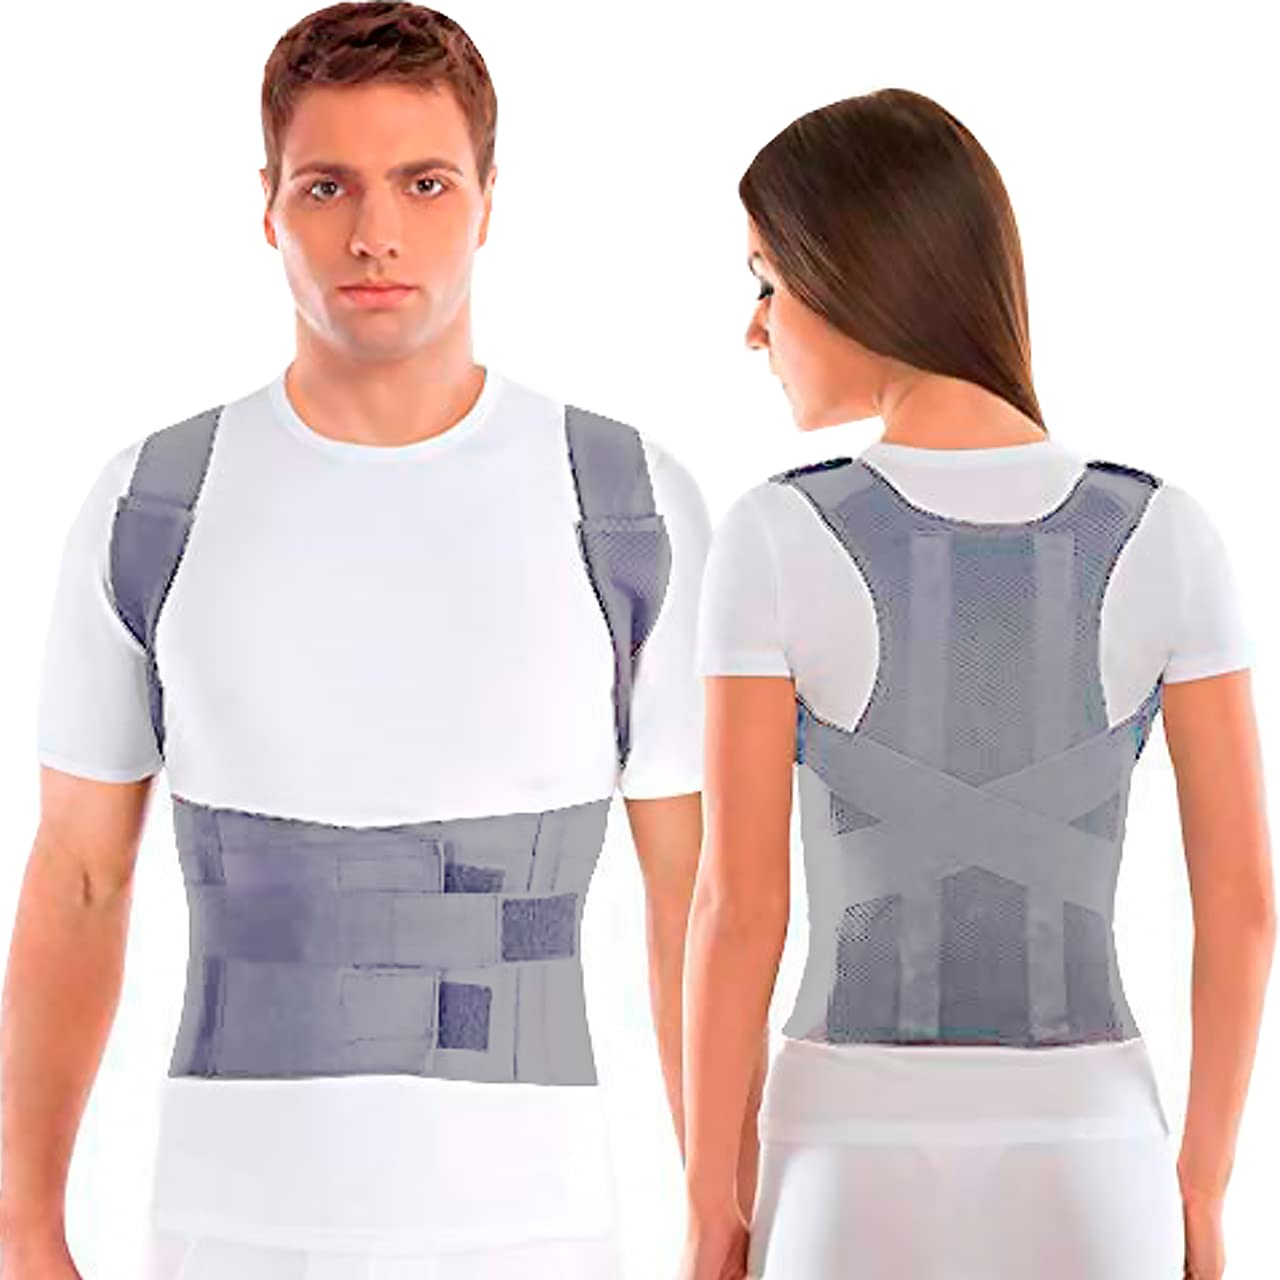 Posture Corrector Shoulder Max 41% OFF Support Fully Brace Adjustable Back Sales of SALE items from new works